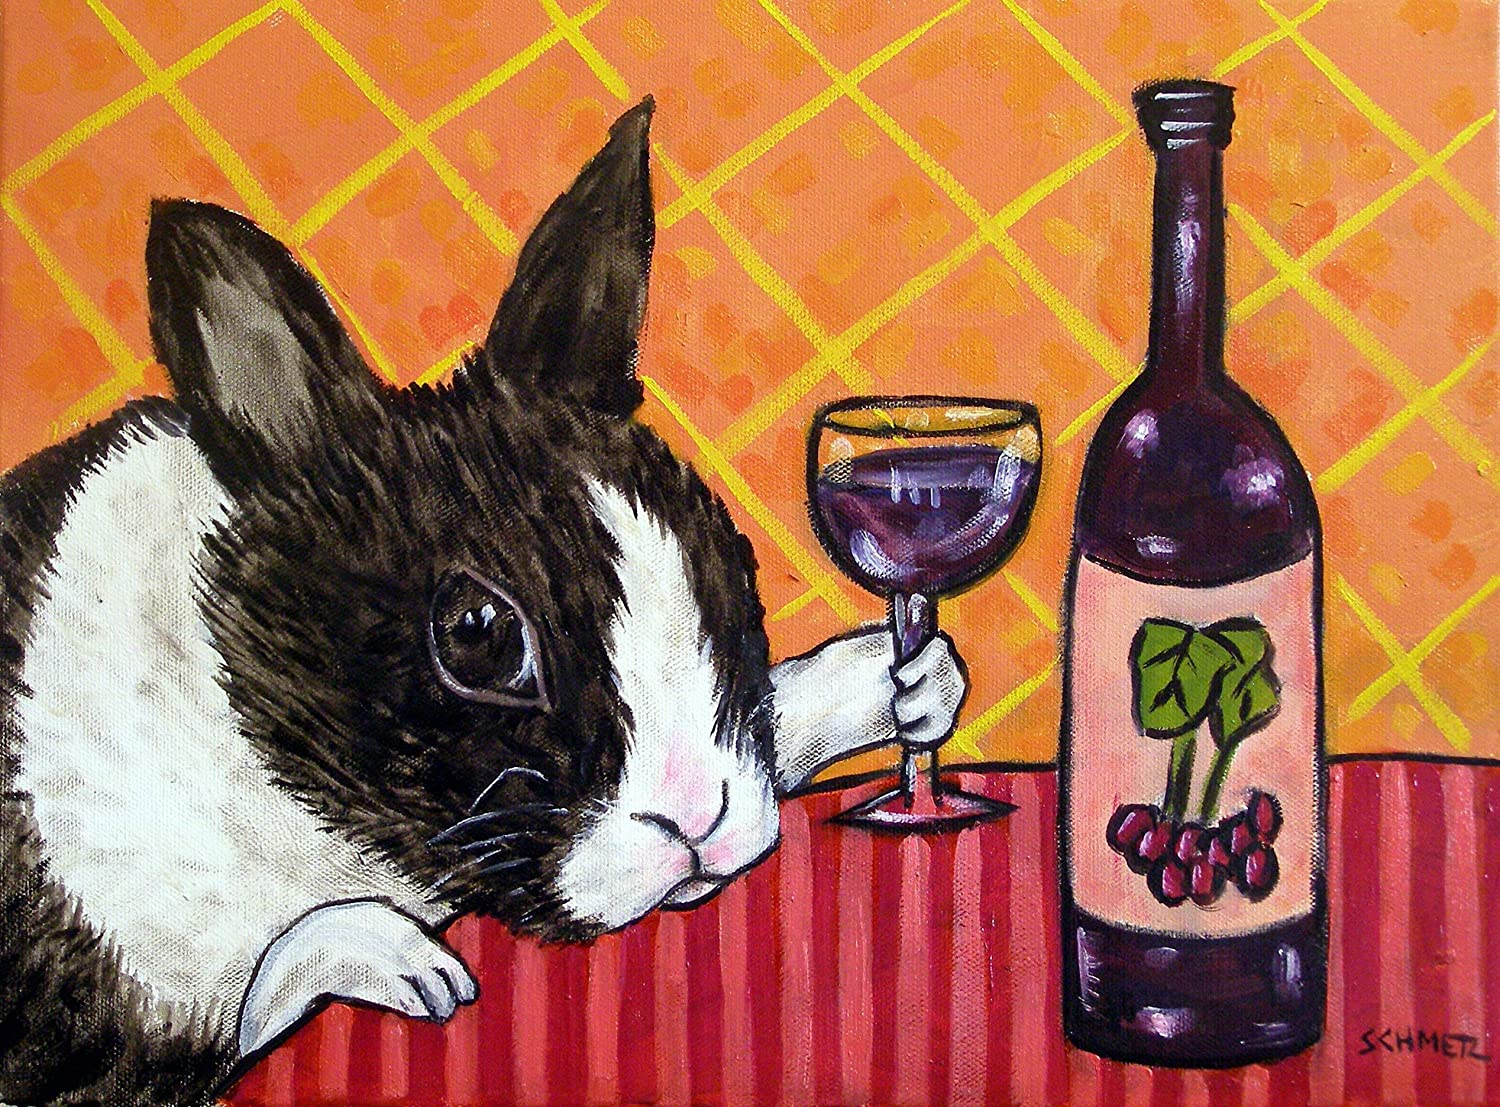 Bunny New color at Super sale period limited the Wine Bar Signed Print Rabbit art